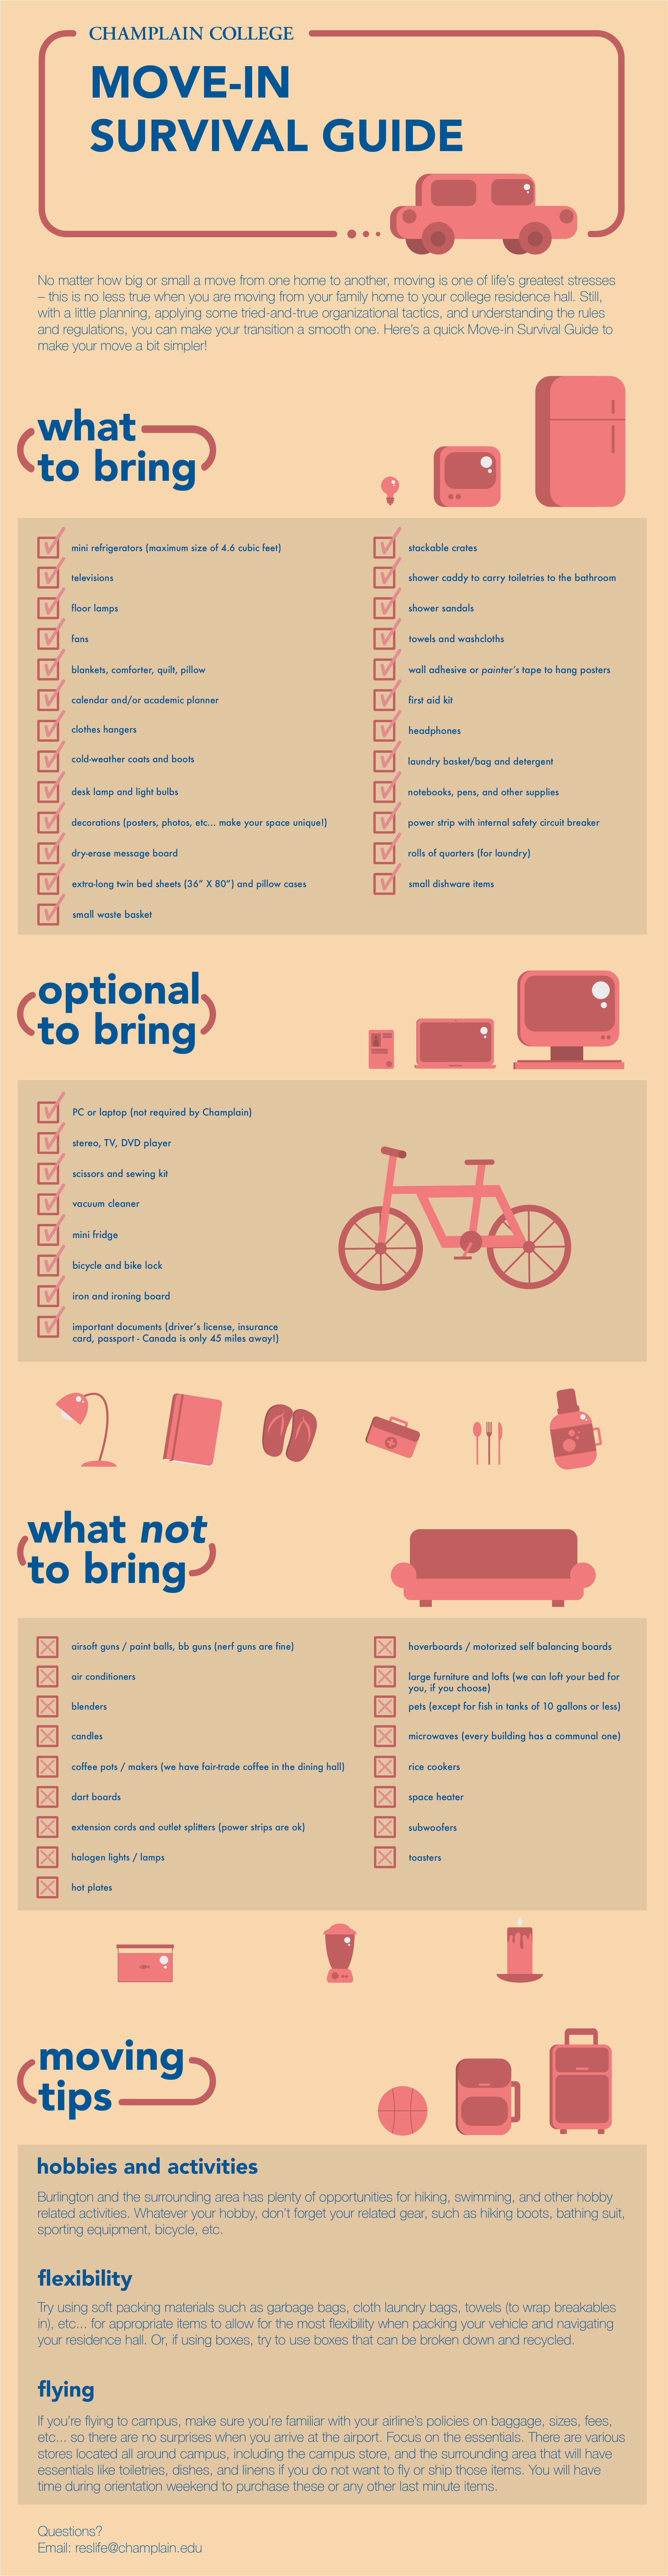 Infographic with items to bring to campus, items to leave at home, and packing tips.